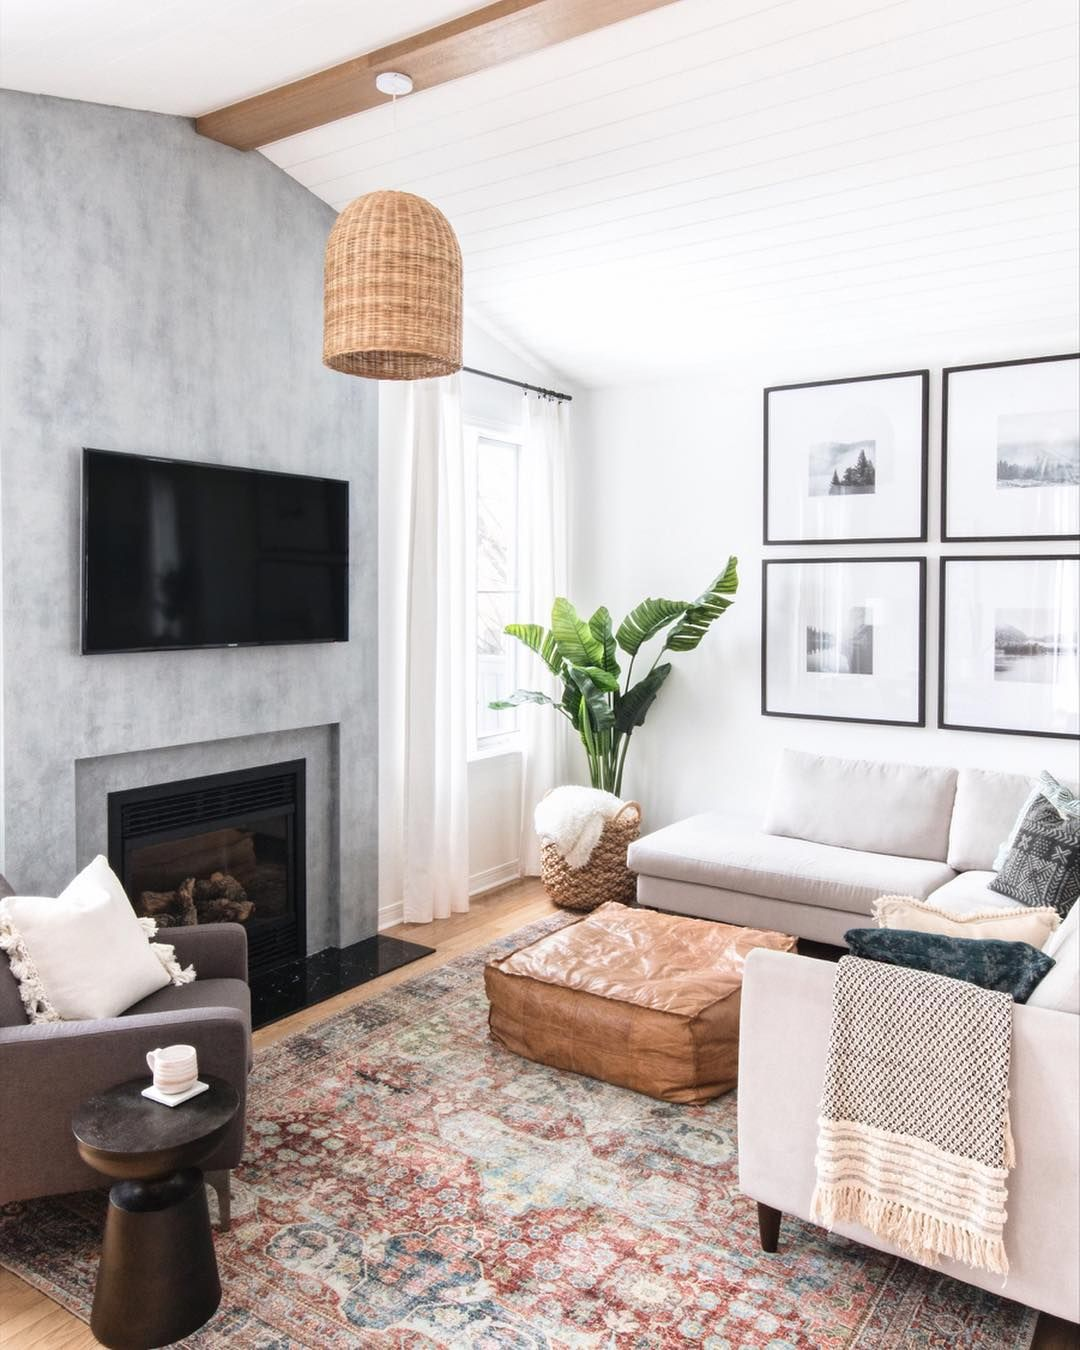 Pin By Brenda McGee On Living Rooms In 2019